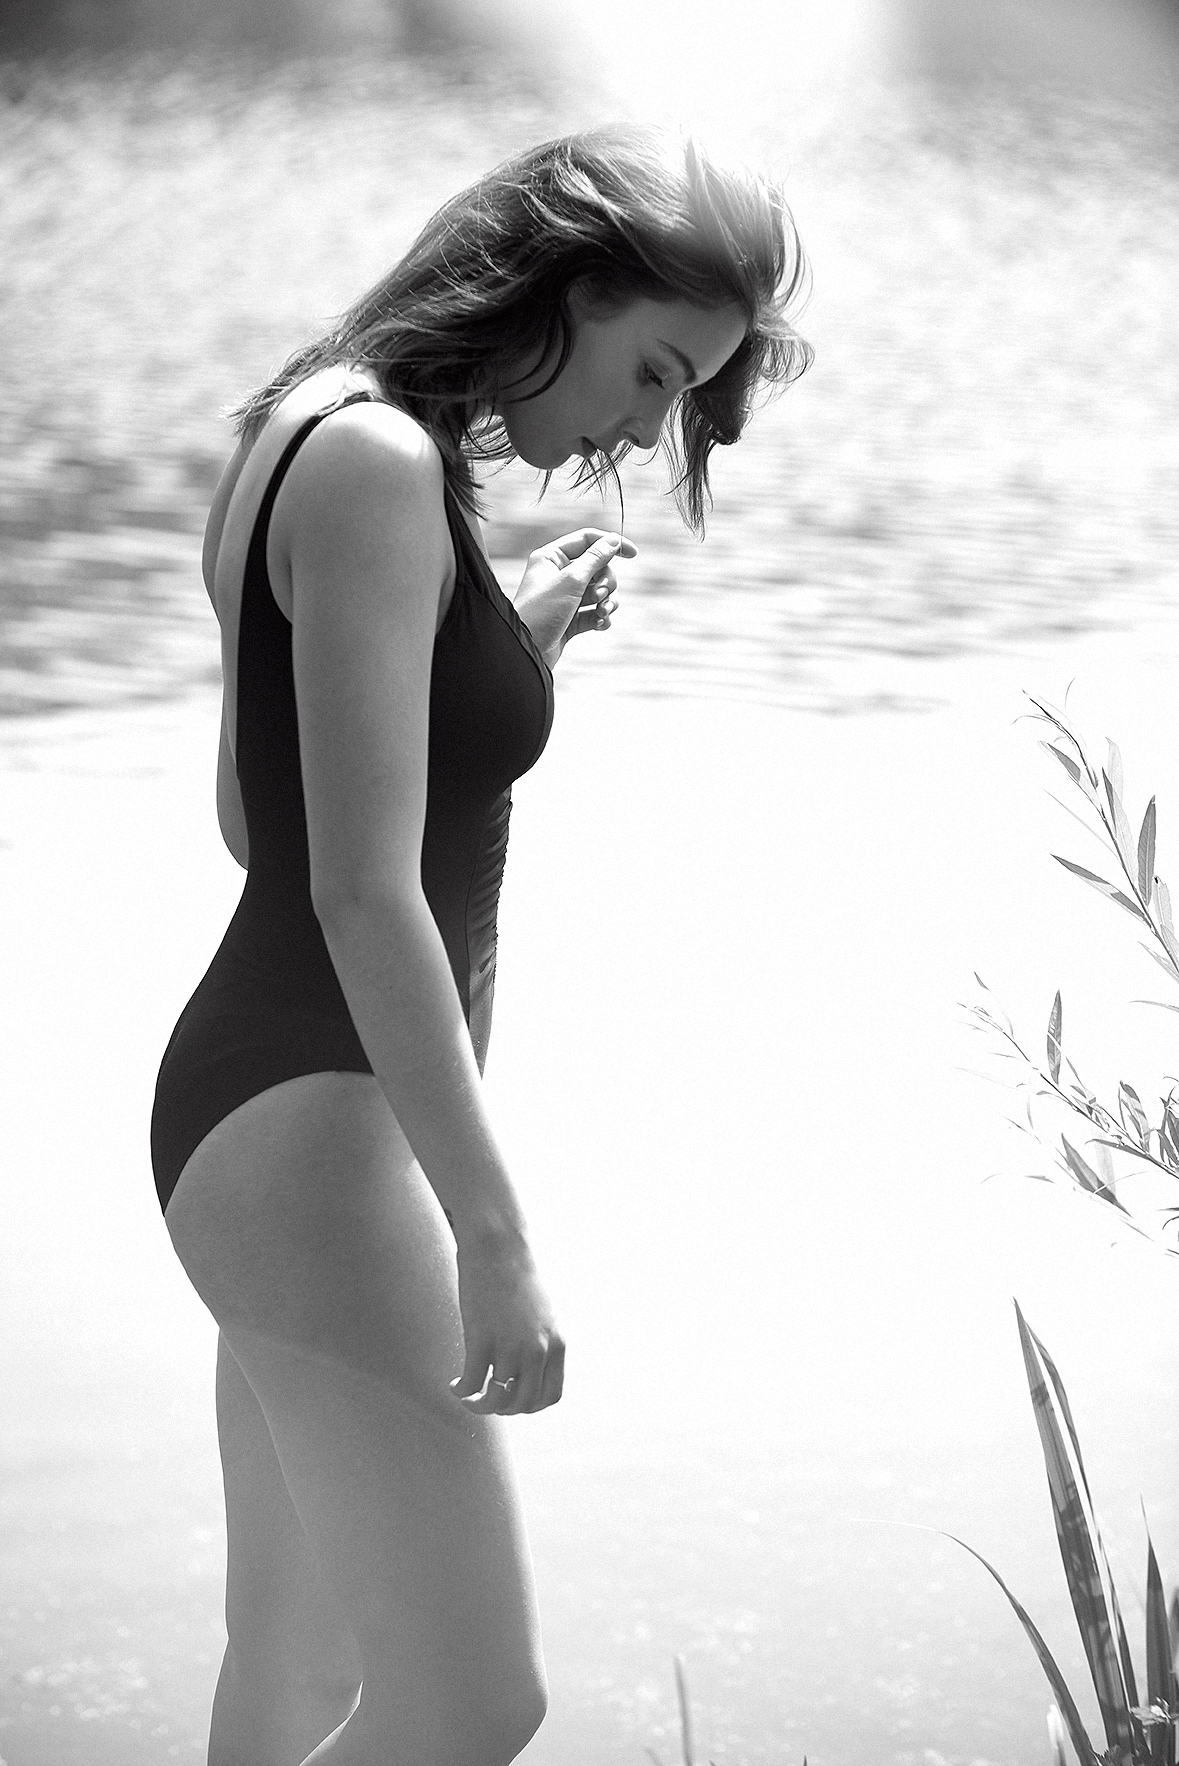 Miracle-suit-black-swimwear-hamstead-heath-pool-swimsuit-lingerie-la-femme-editorial-photoshoot-bathing-suit-08